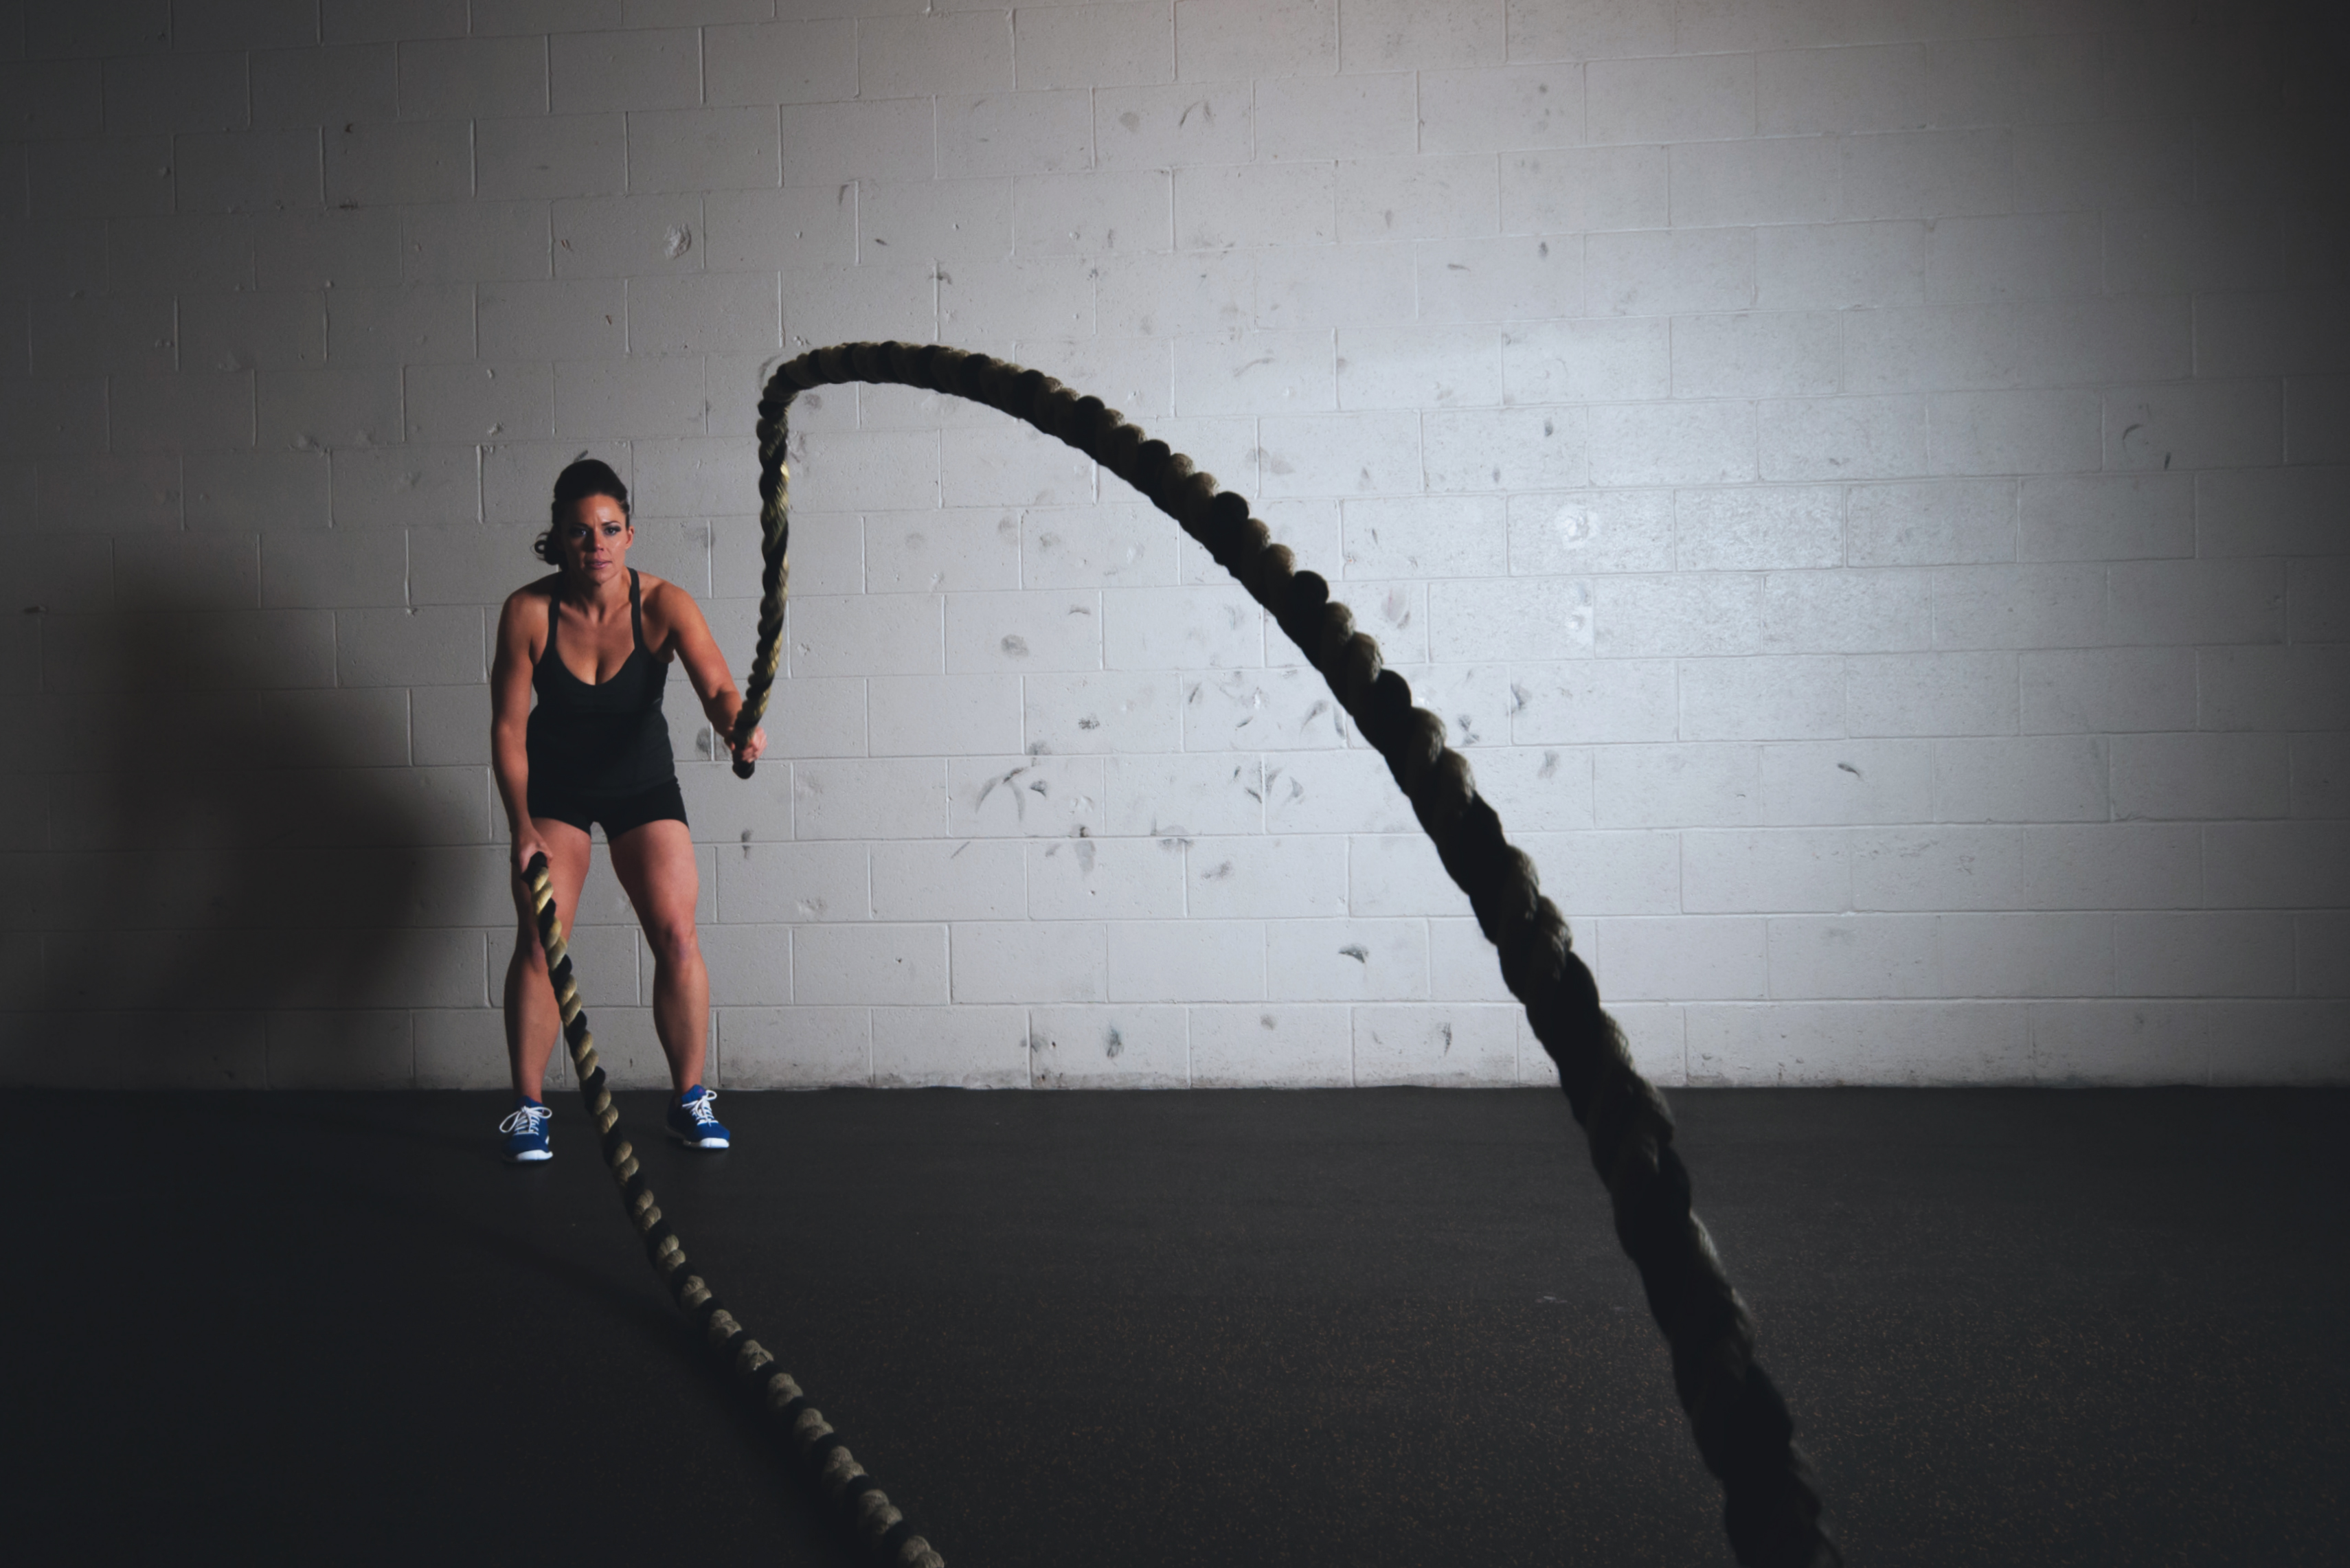 training with battle ropes